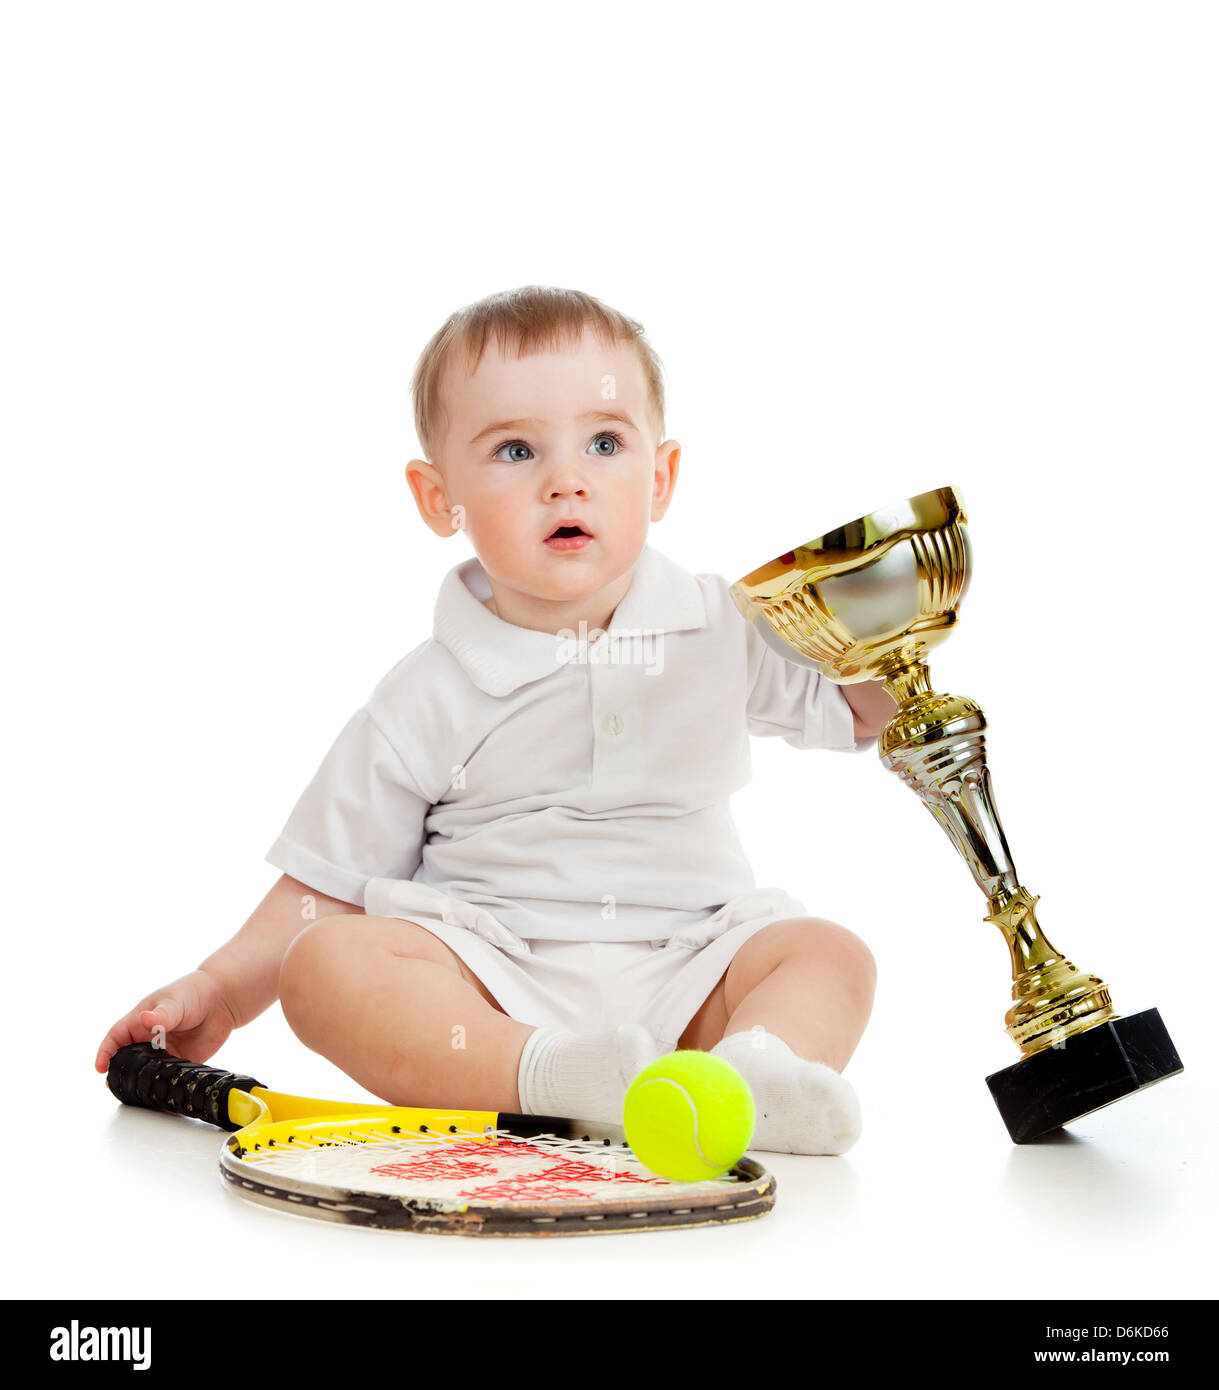 adorable child playing with tennis racket and cup over white background - Stock Image